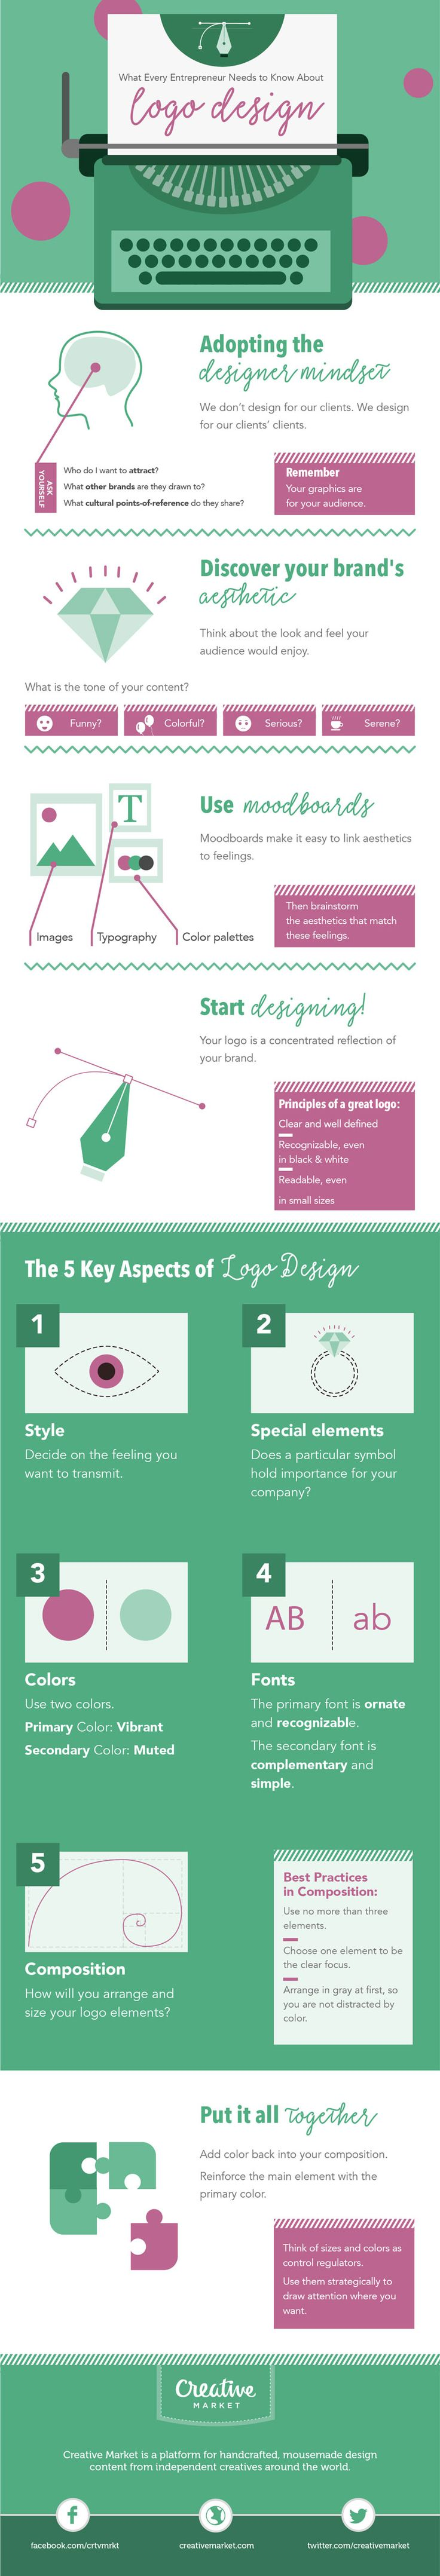 best ideas about create a logo logo design how to create a logo for a startup